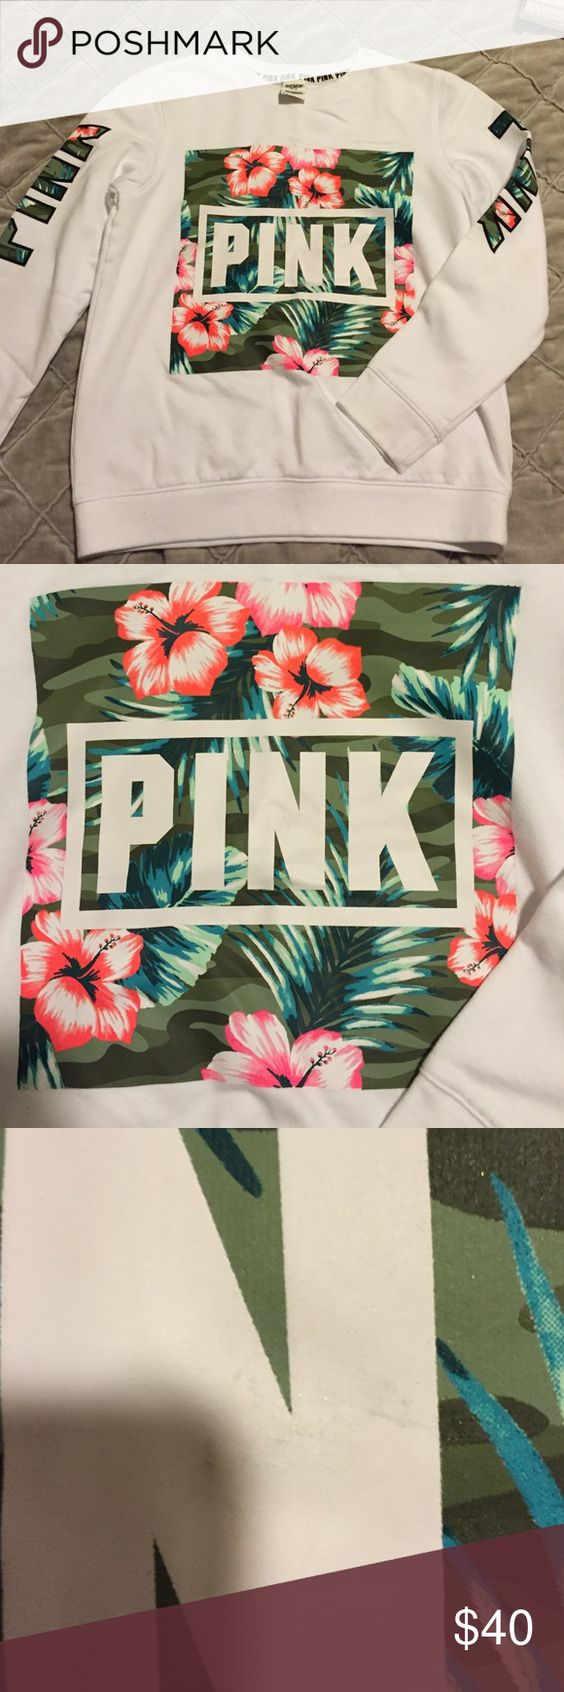 NWOT PINK Sweatshirt Never been worn. There is however a very small black mark on the N as shown in photo. PINK Victoria's Secret Tops Sweatshirts & Hoodies